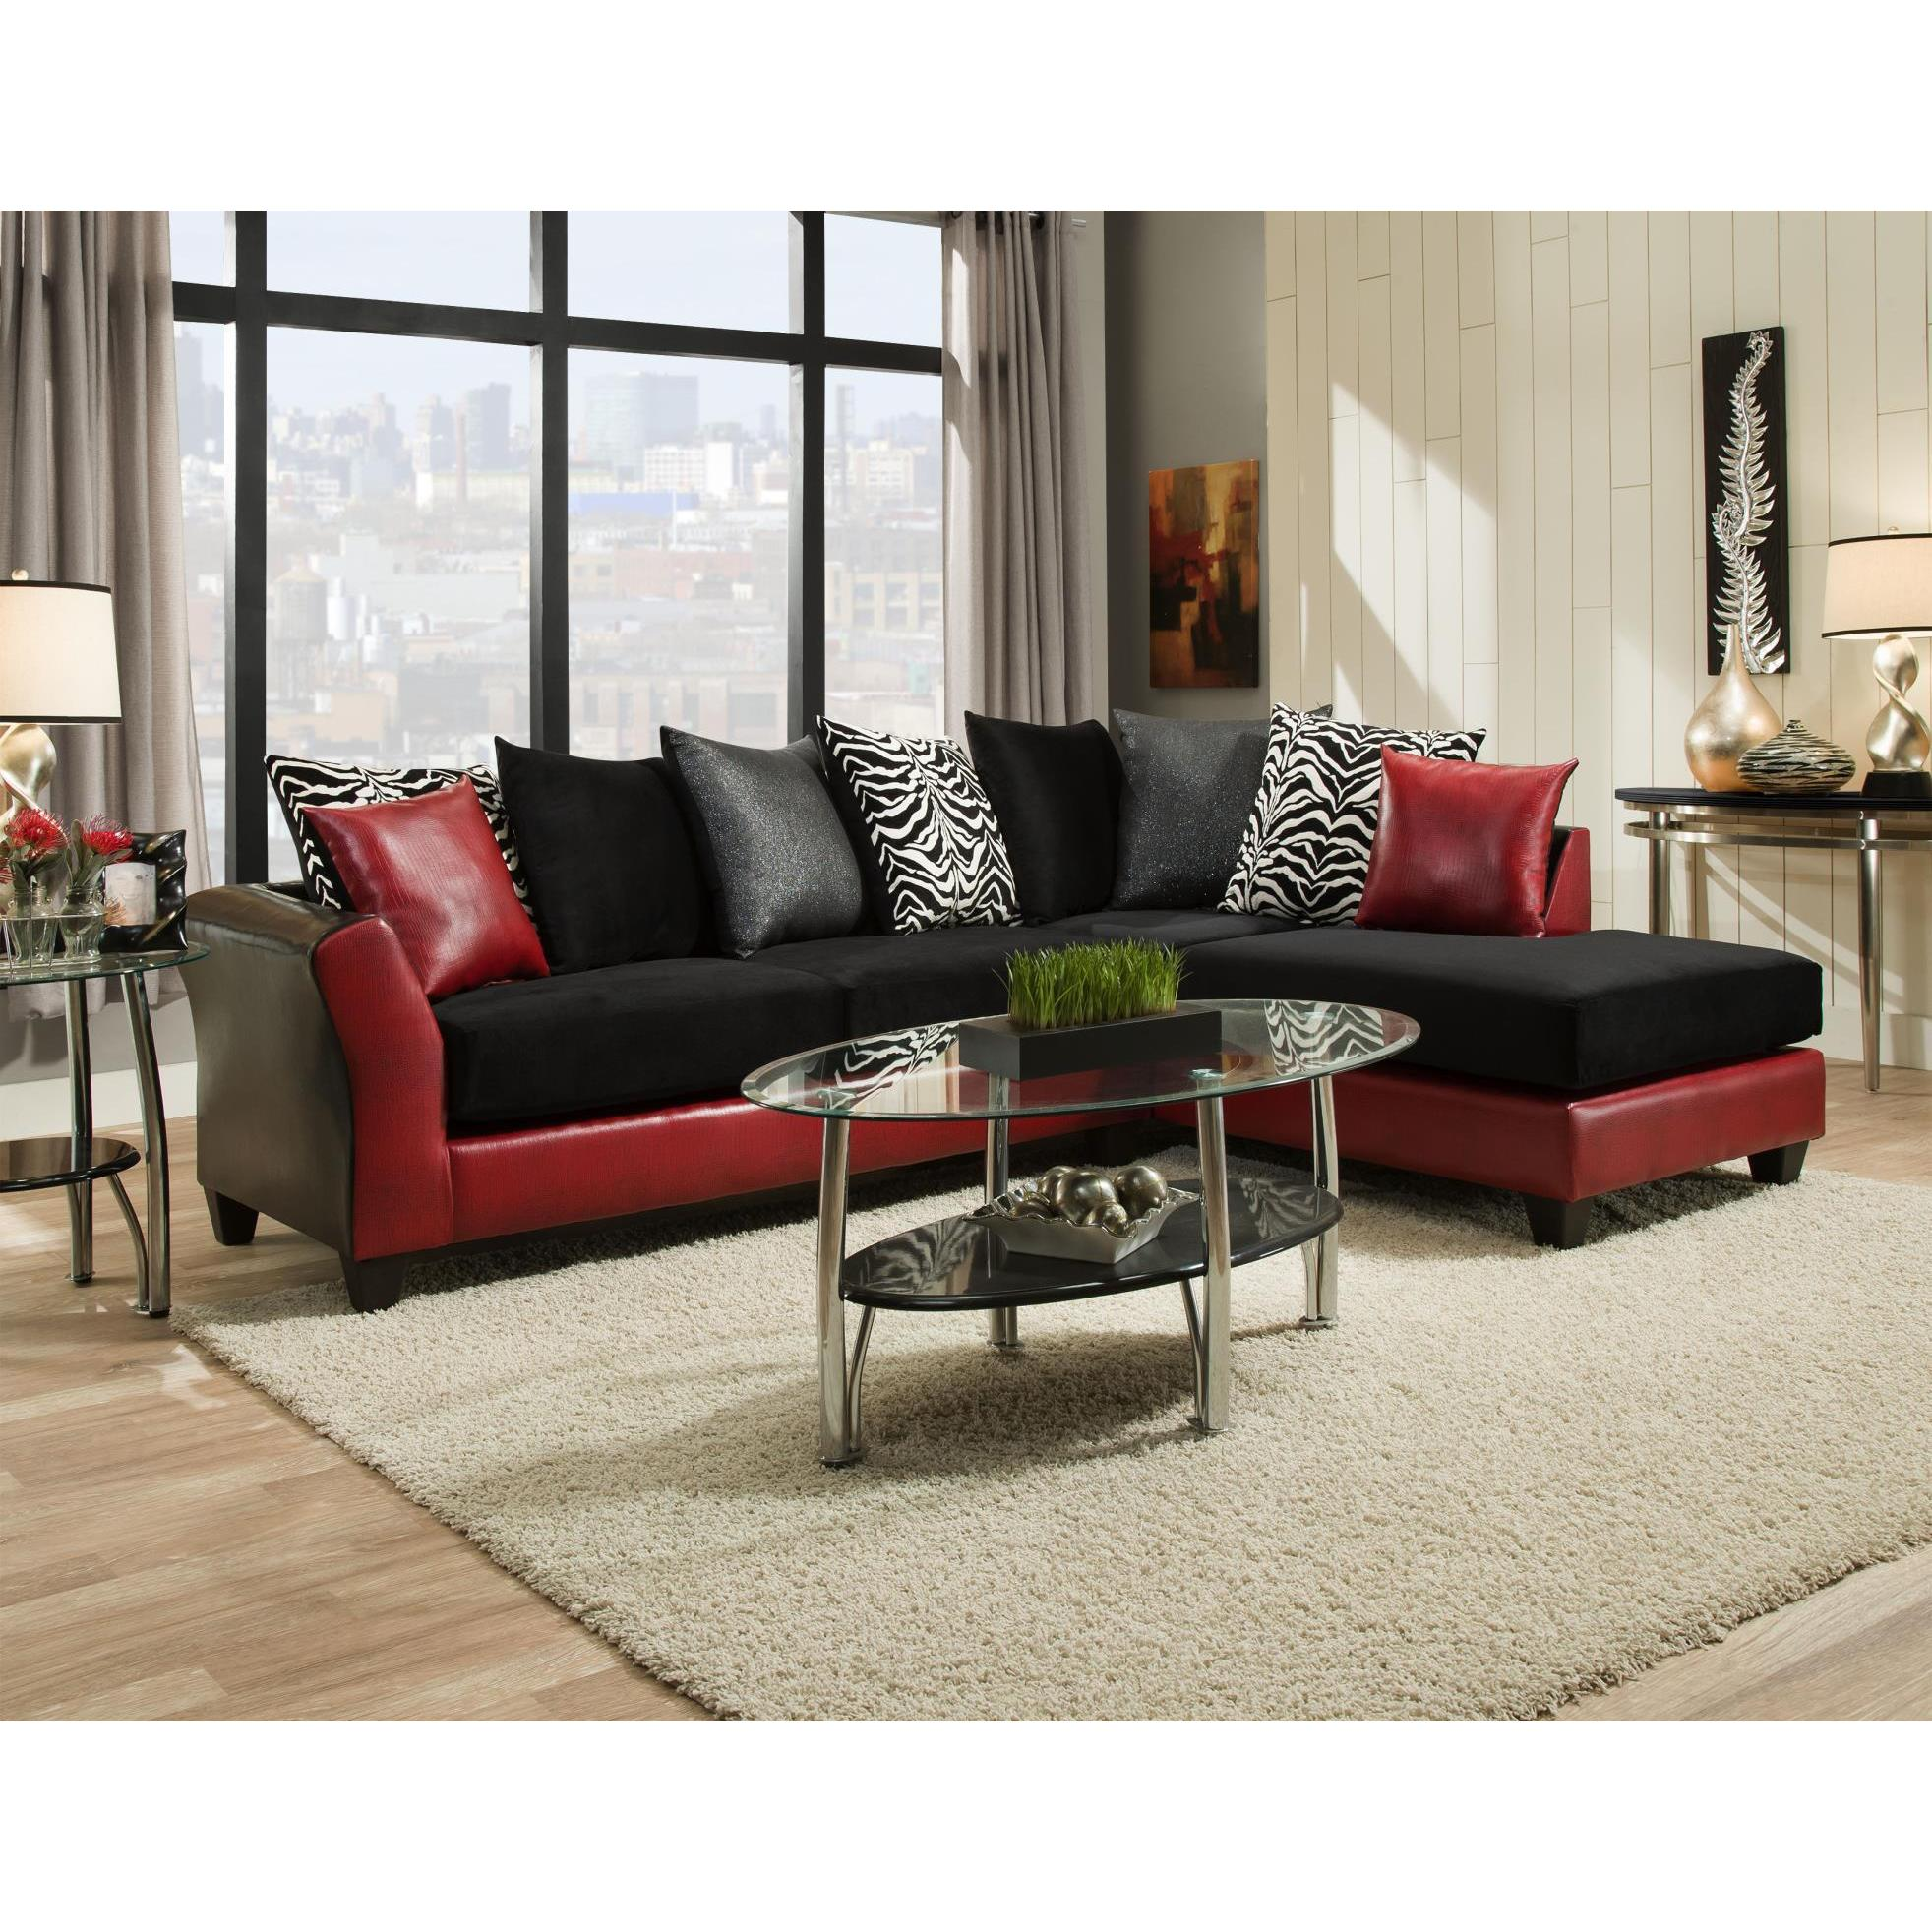 SOFA TRENDZ Daisy Black & Red Sectional